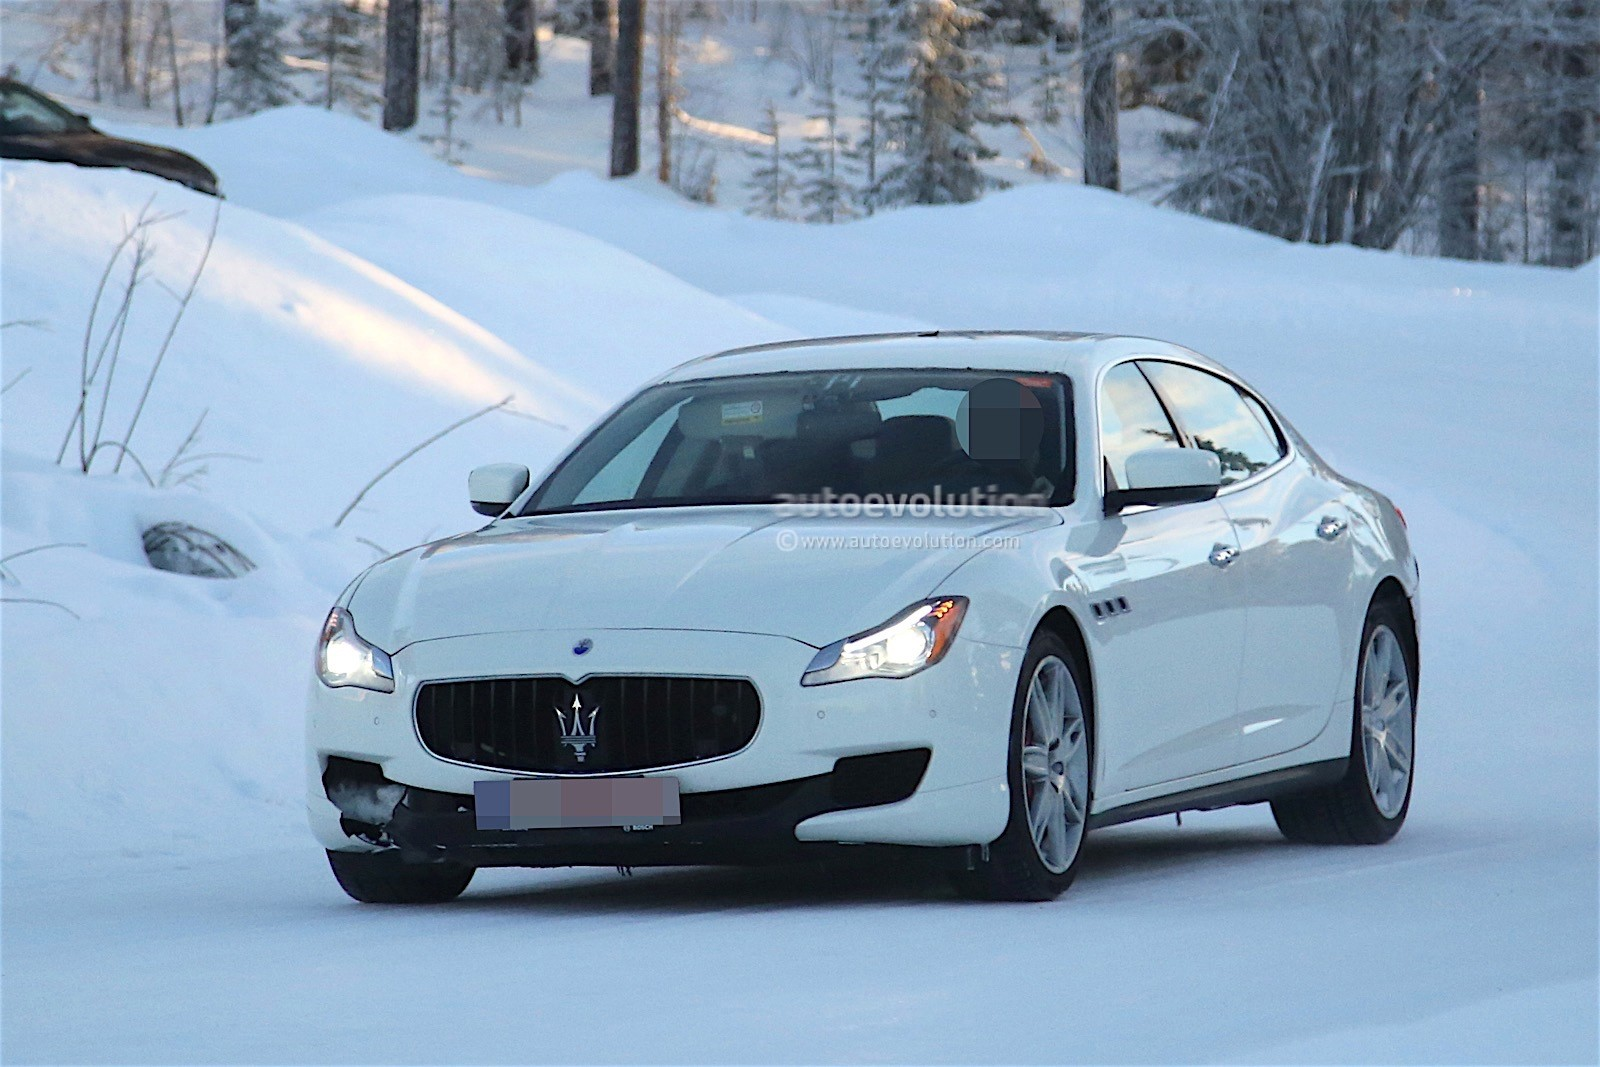 2017 Maserati Quattroporte Facelift Spied With Little